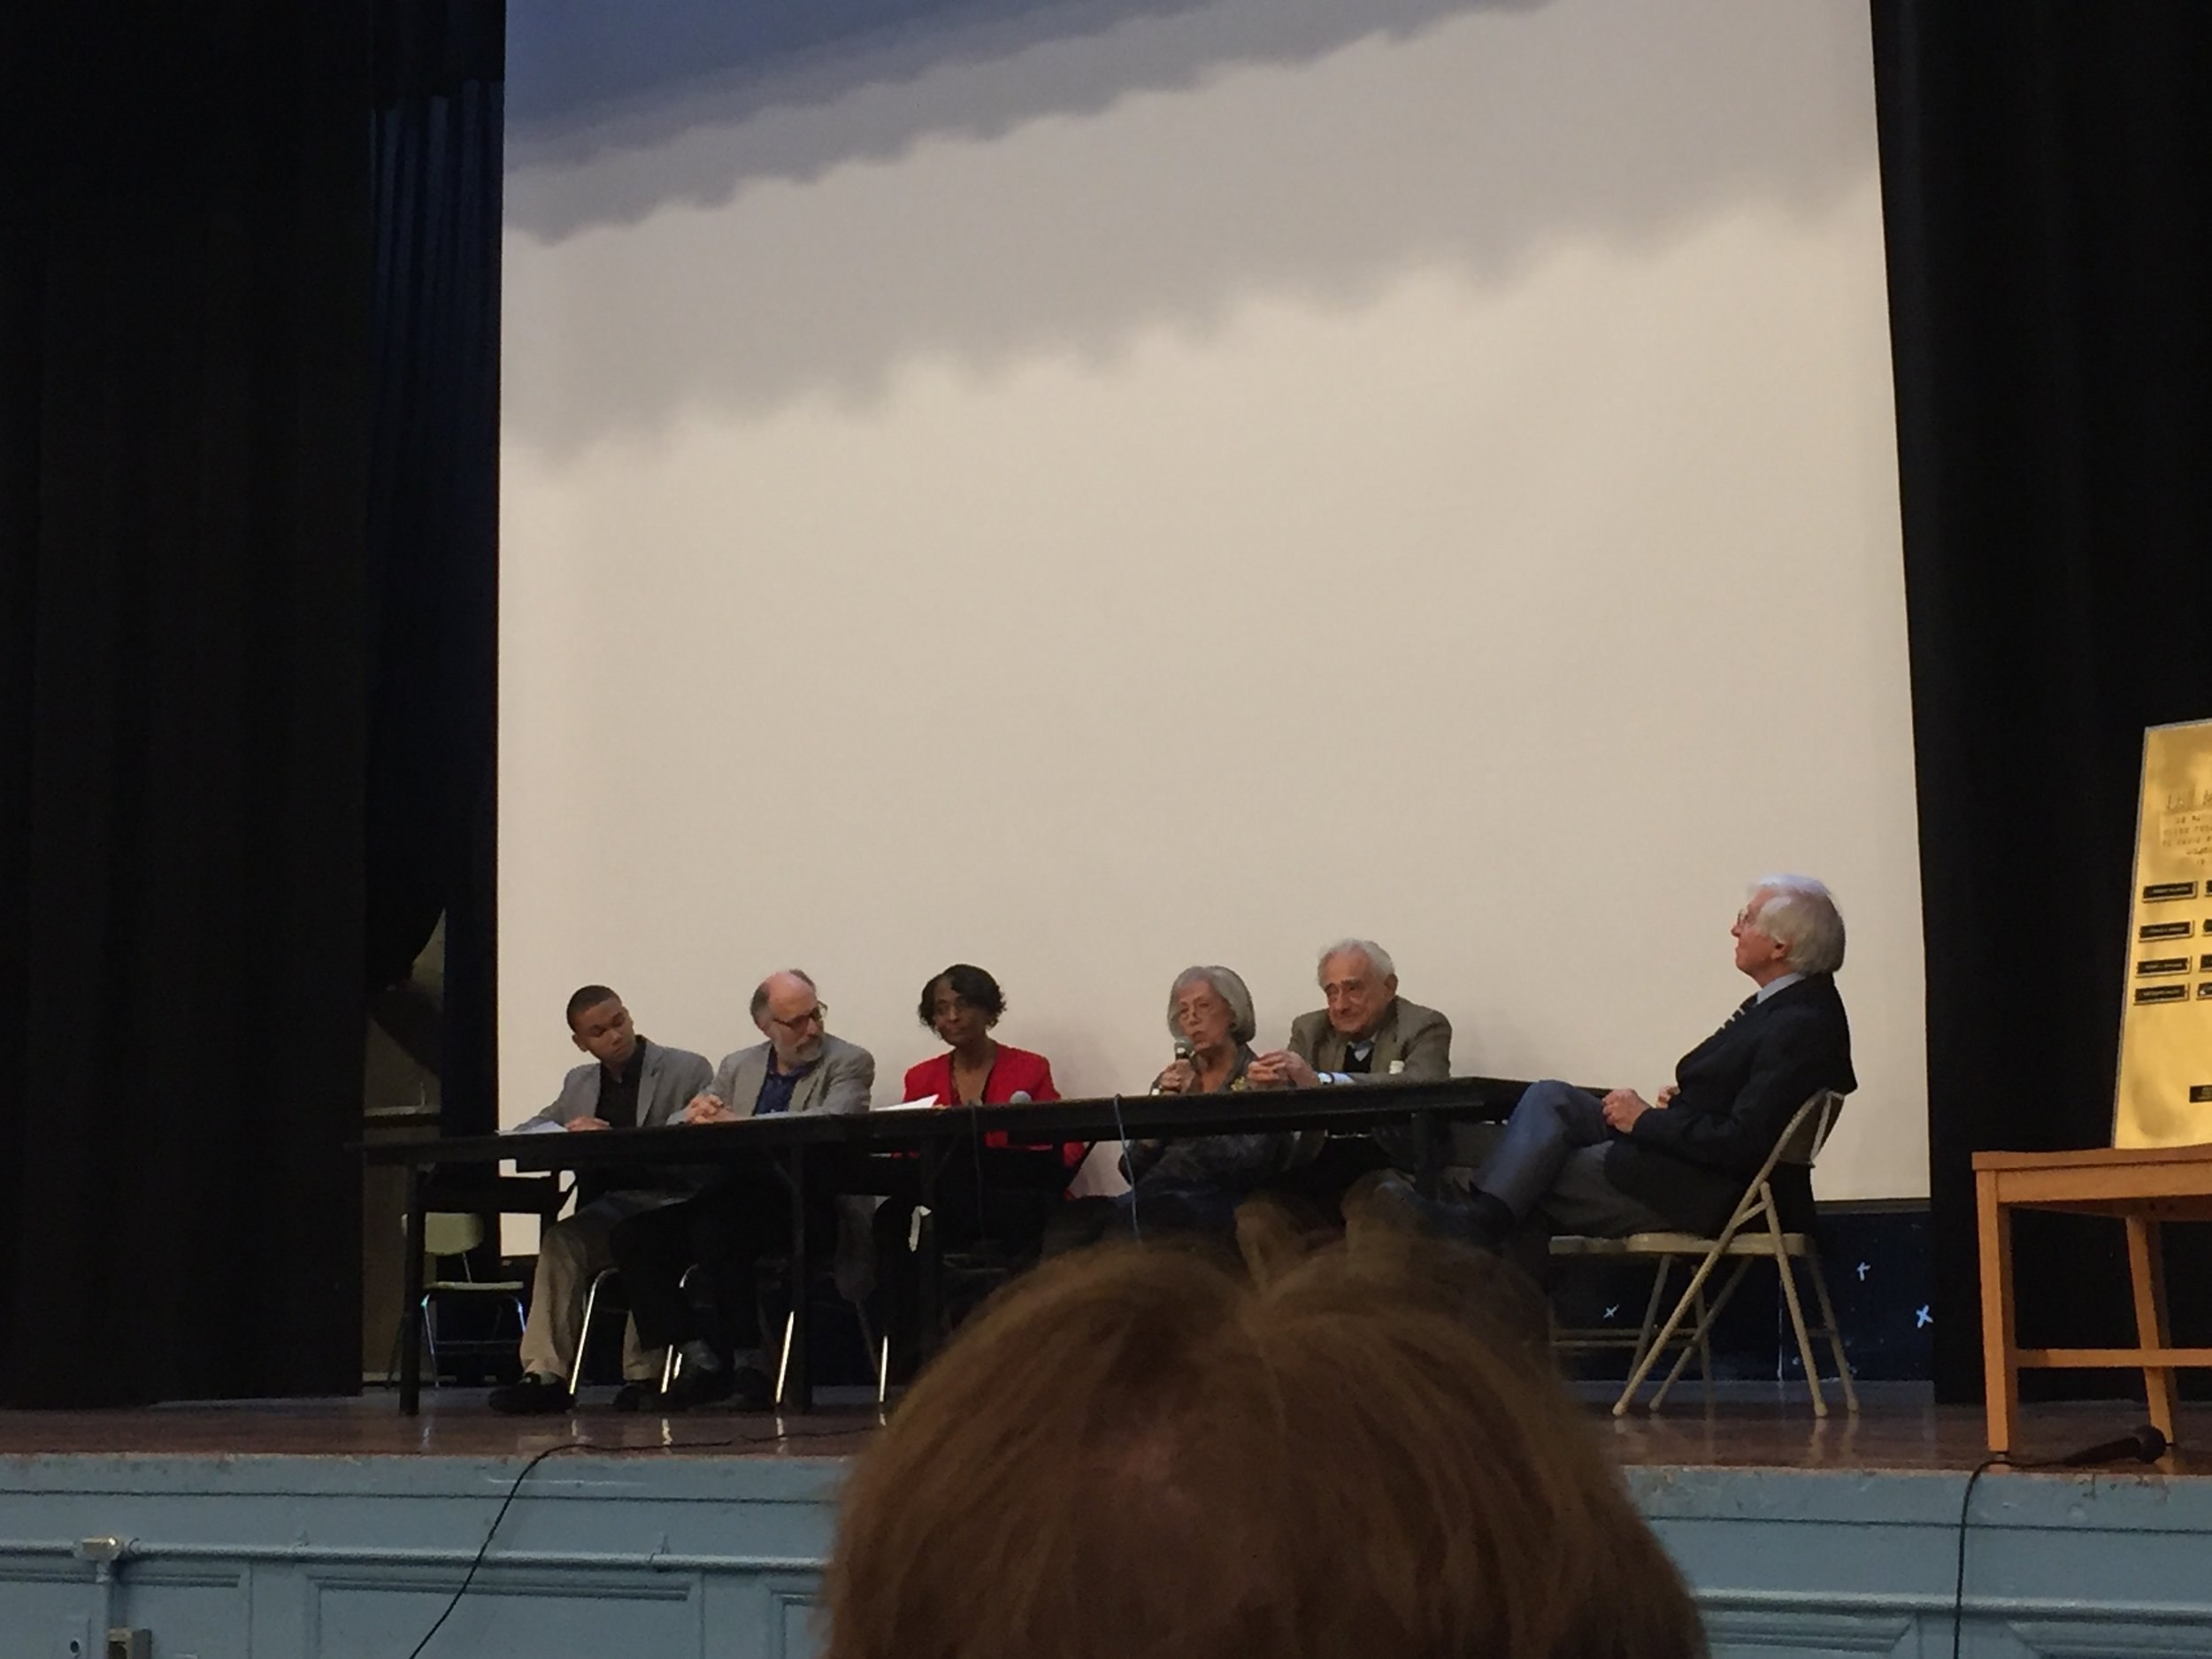 Mayors Panel led by Diane Steinbrink, '54